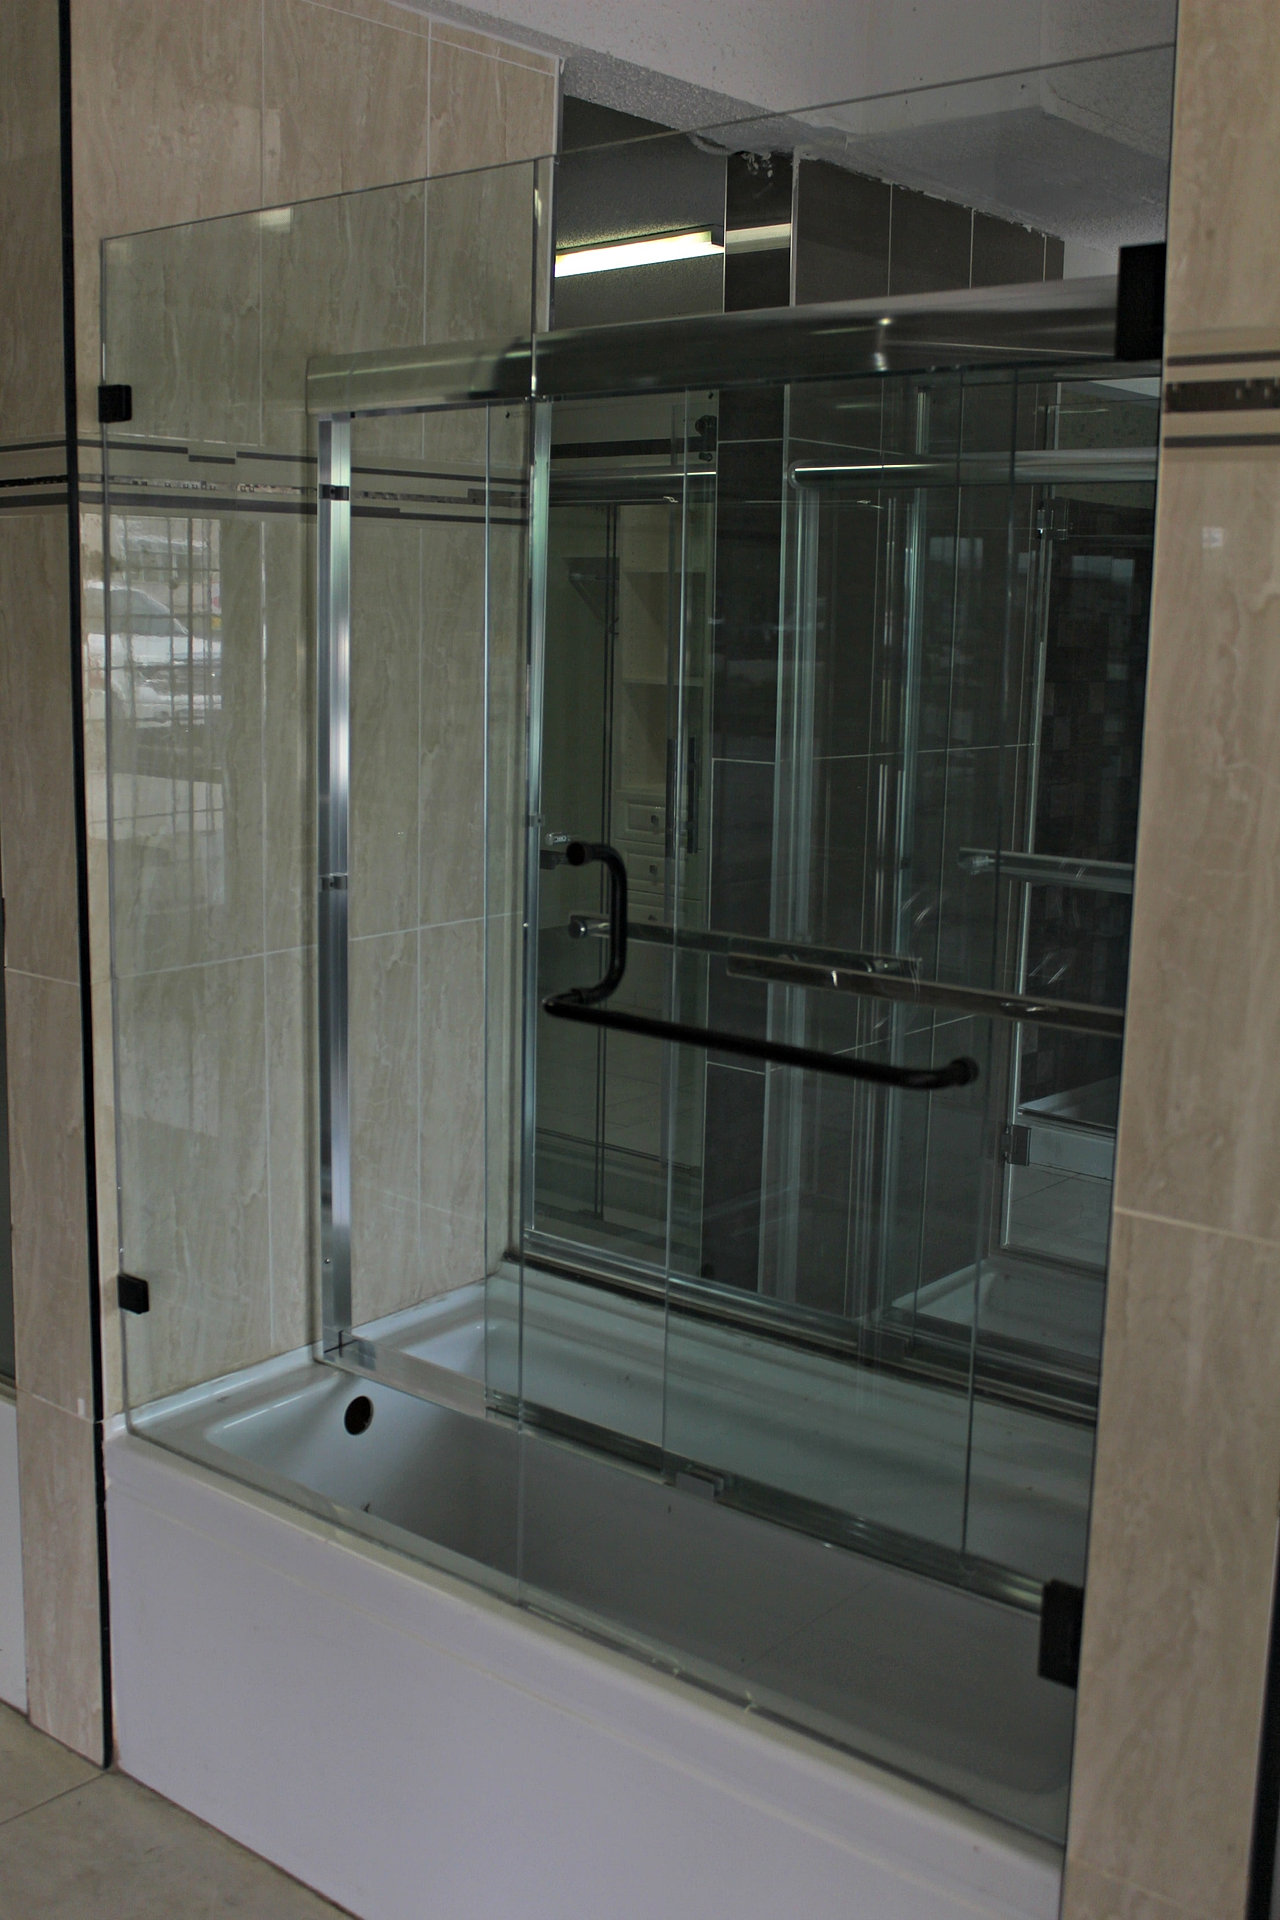 sliding how size replace of instructions glass install full video afterpartyclub dreamline installation frameless tub doors with adjust door to swinging on shower enigma